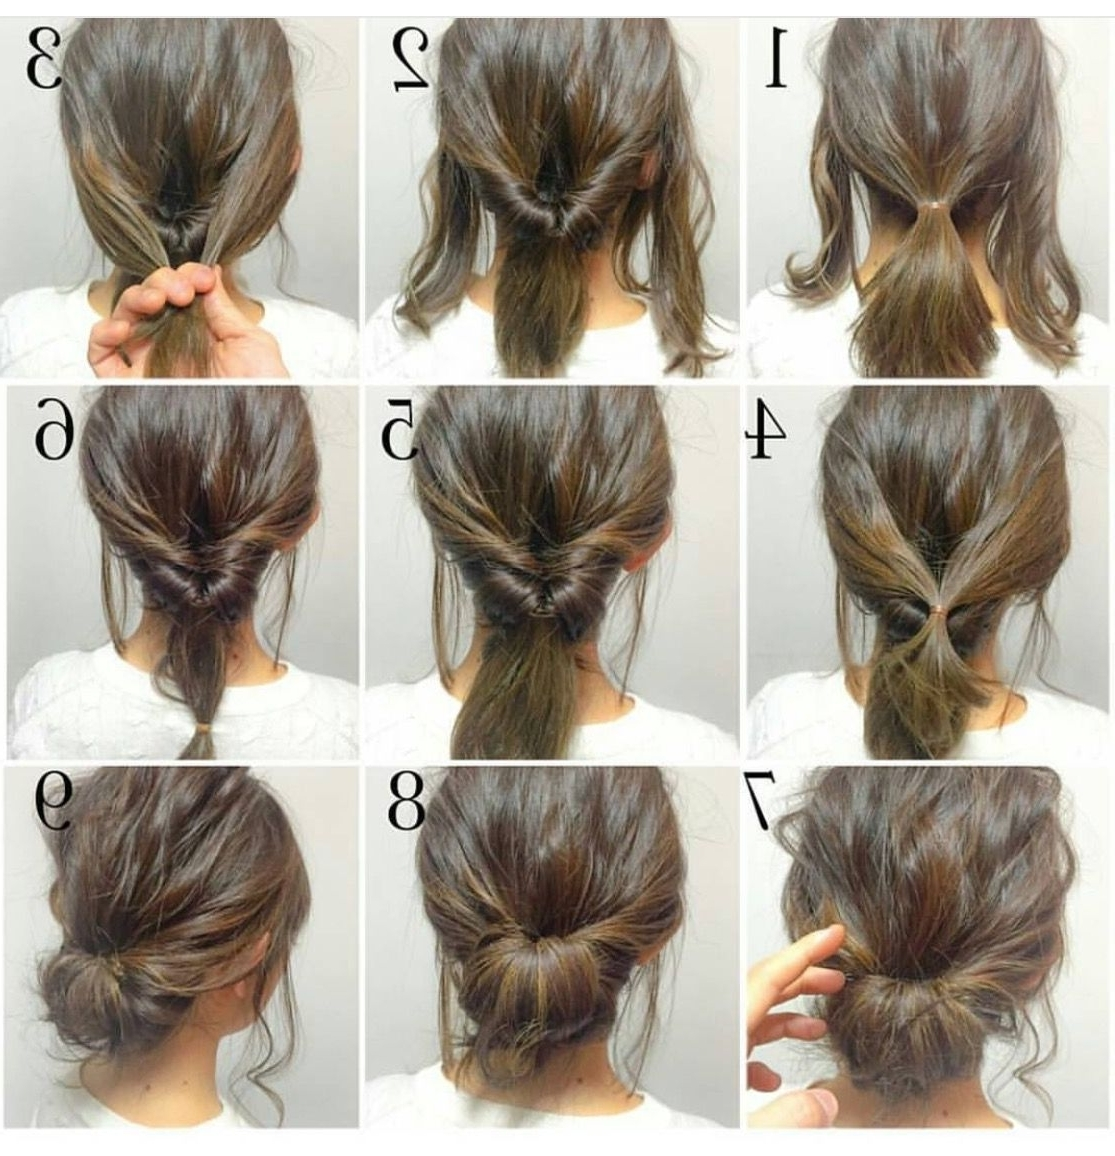 4 Messy Updos For Long Hair | Hairz | Pinterest | Updos, Hair Style Within Quick And Easy Updo Hairstyles For Long Straight Hair (View 7 of 15)